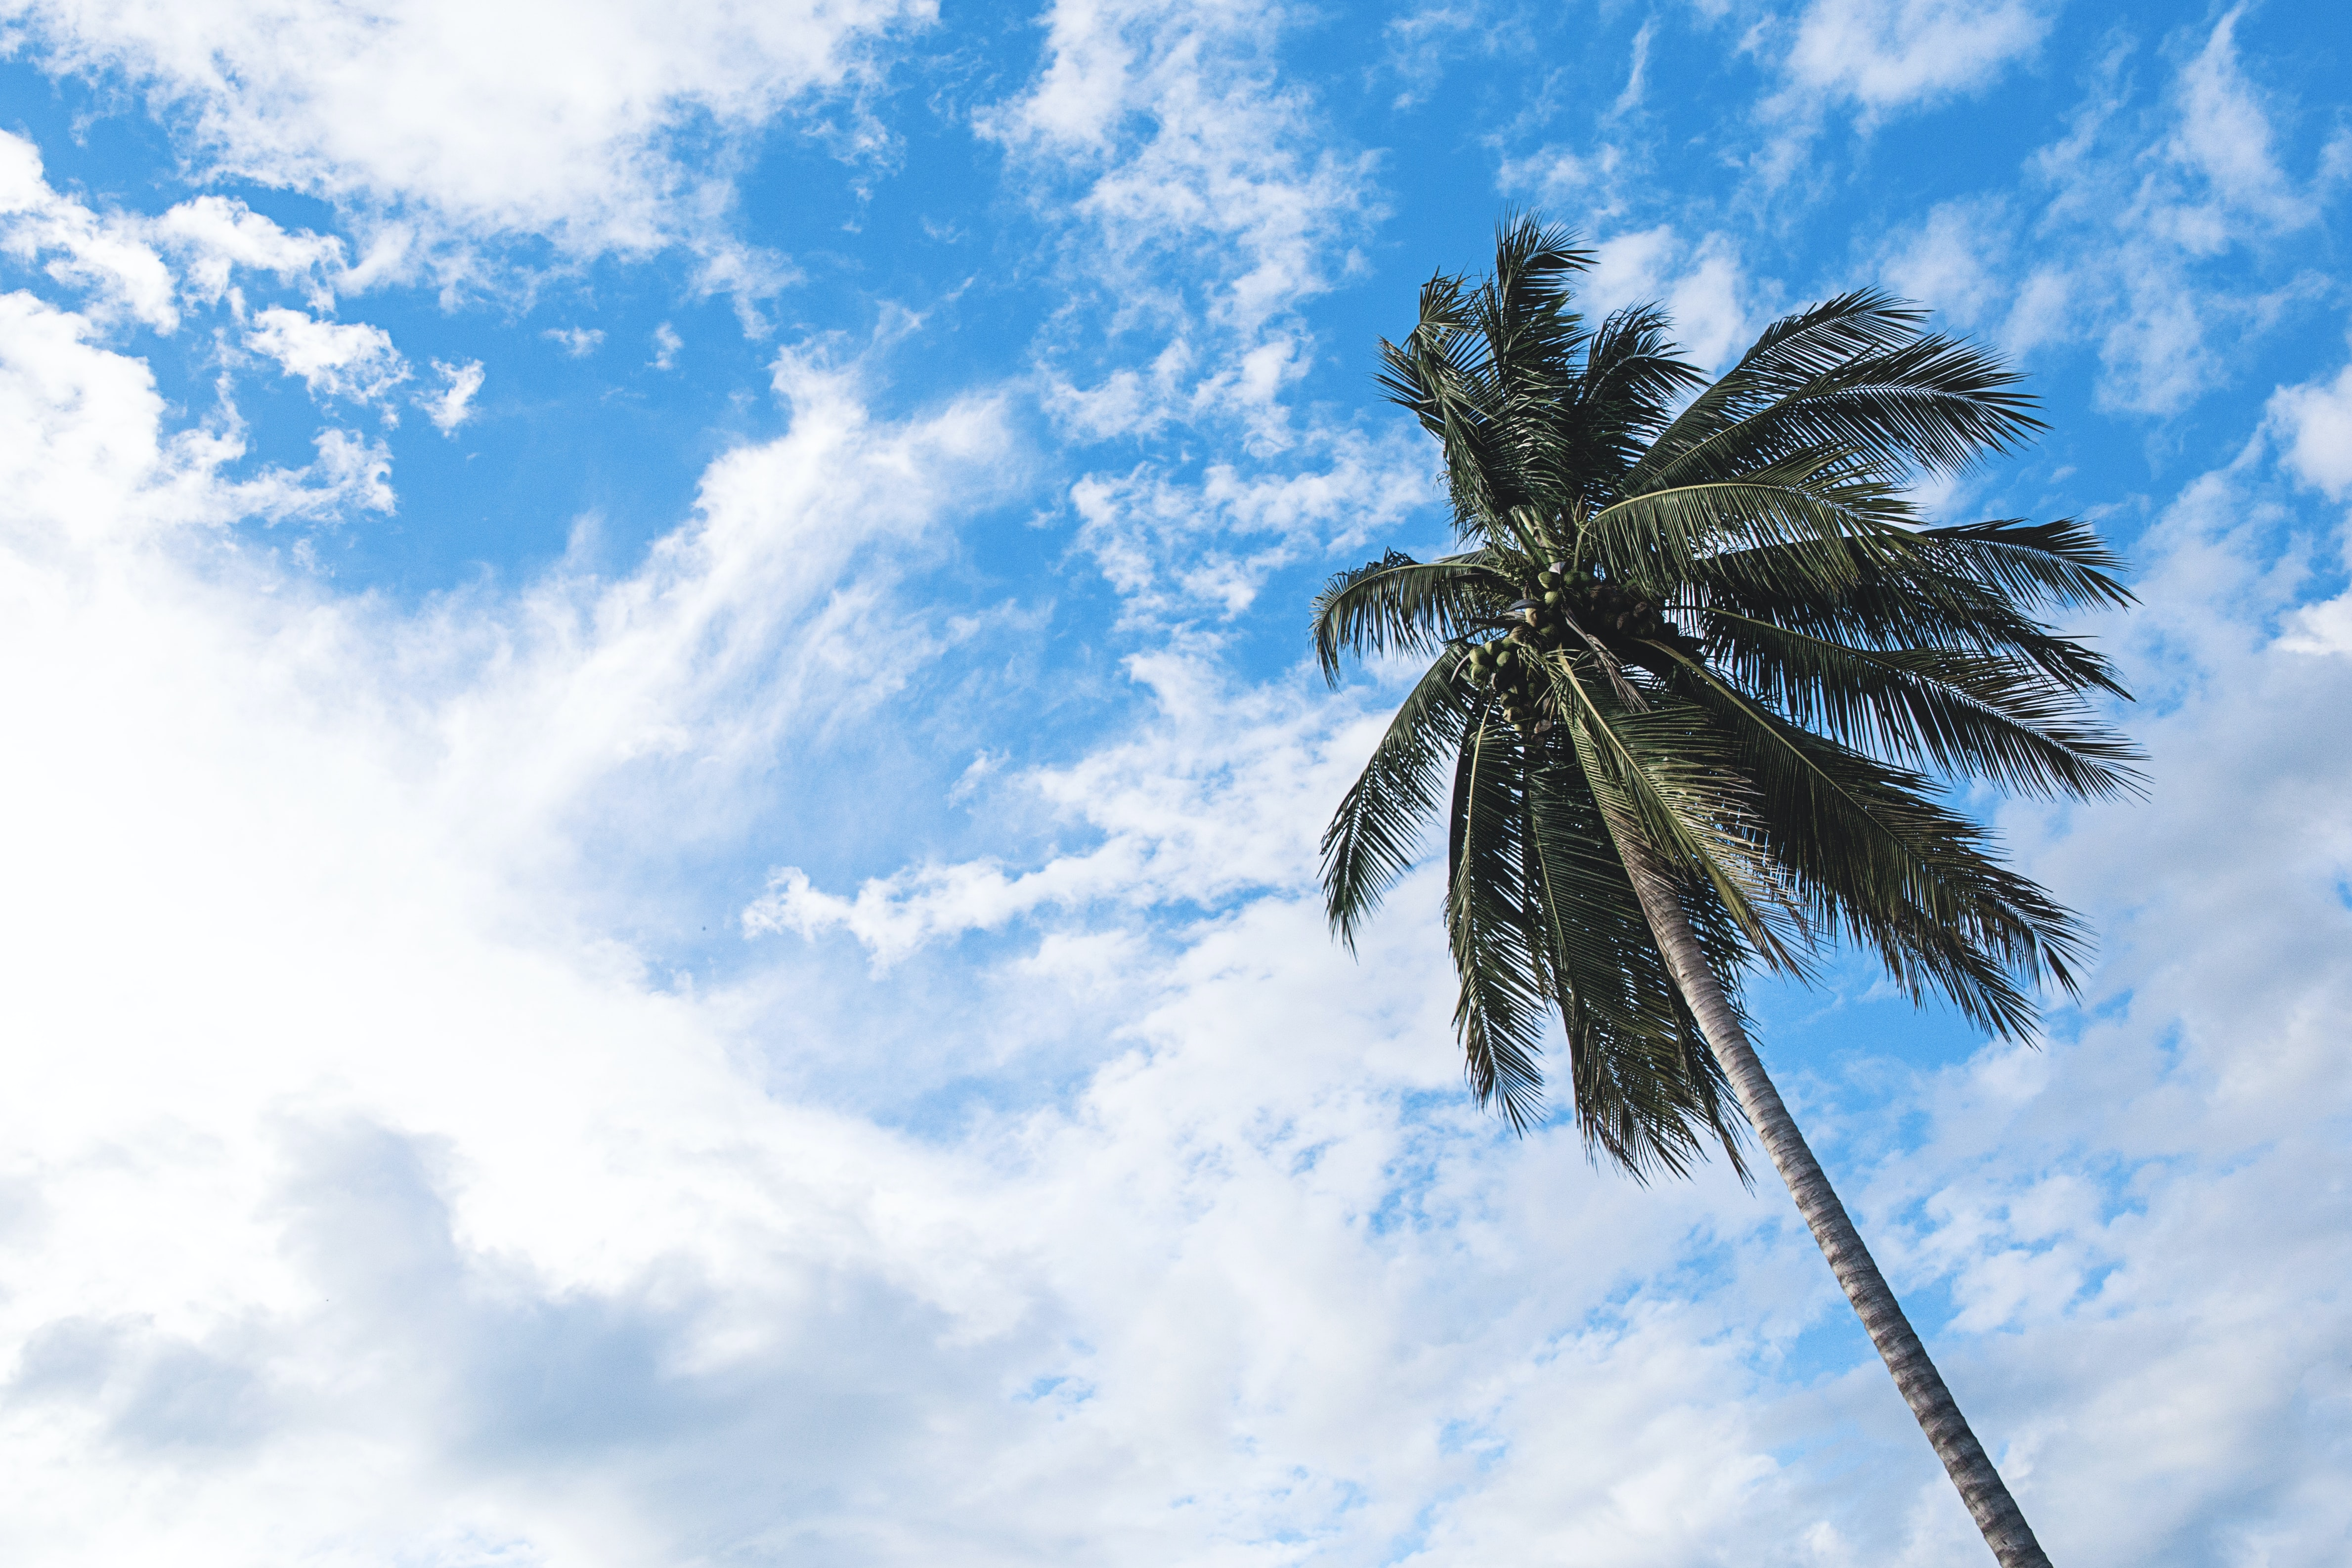 green and brown Coconut tree under white and blue sky during daytie